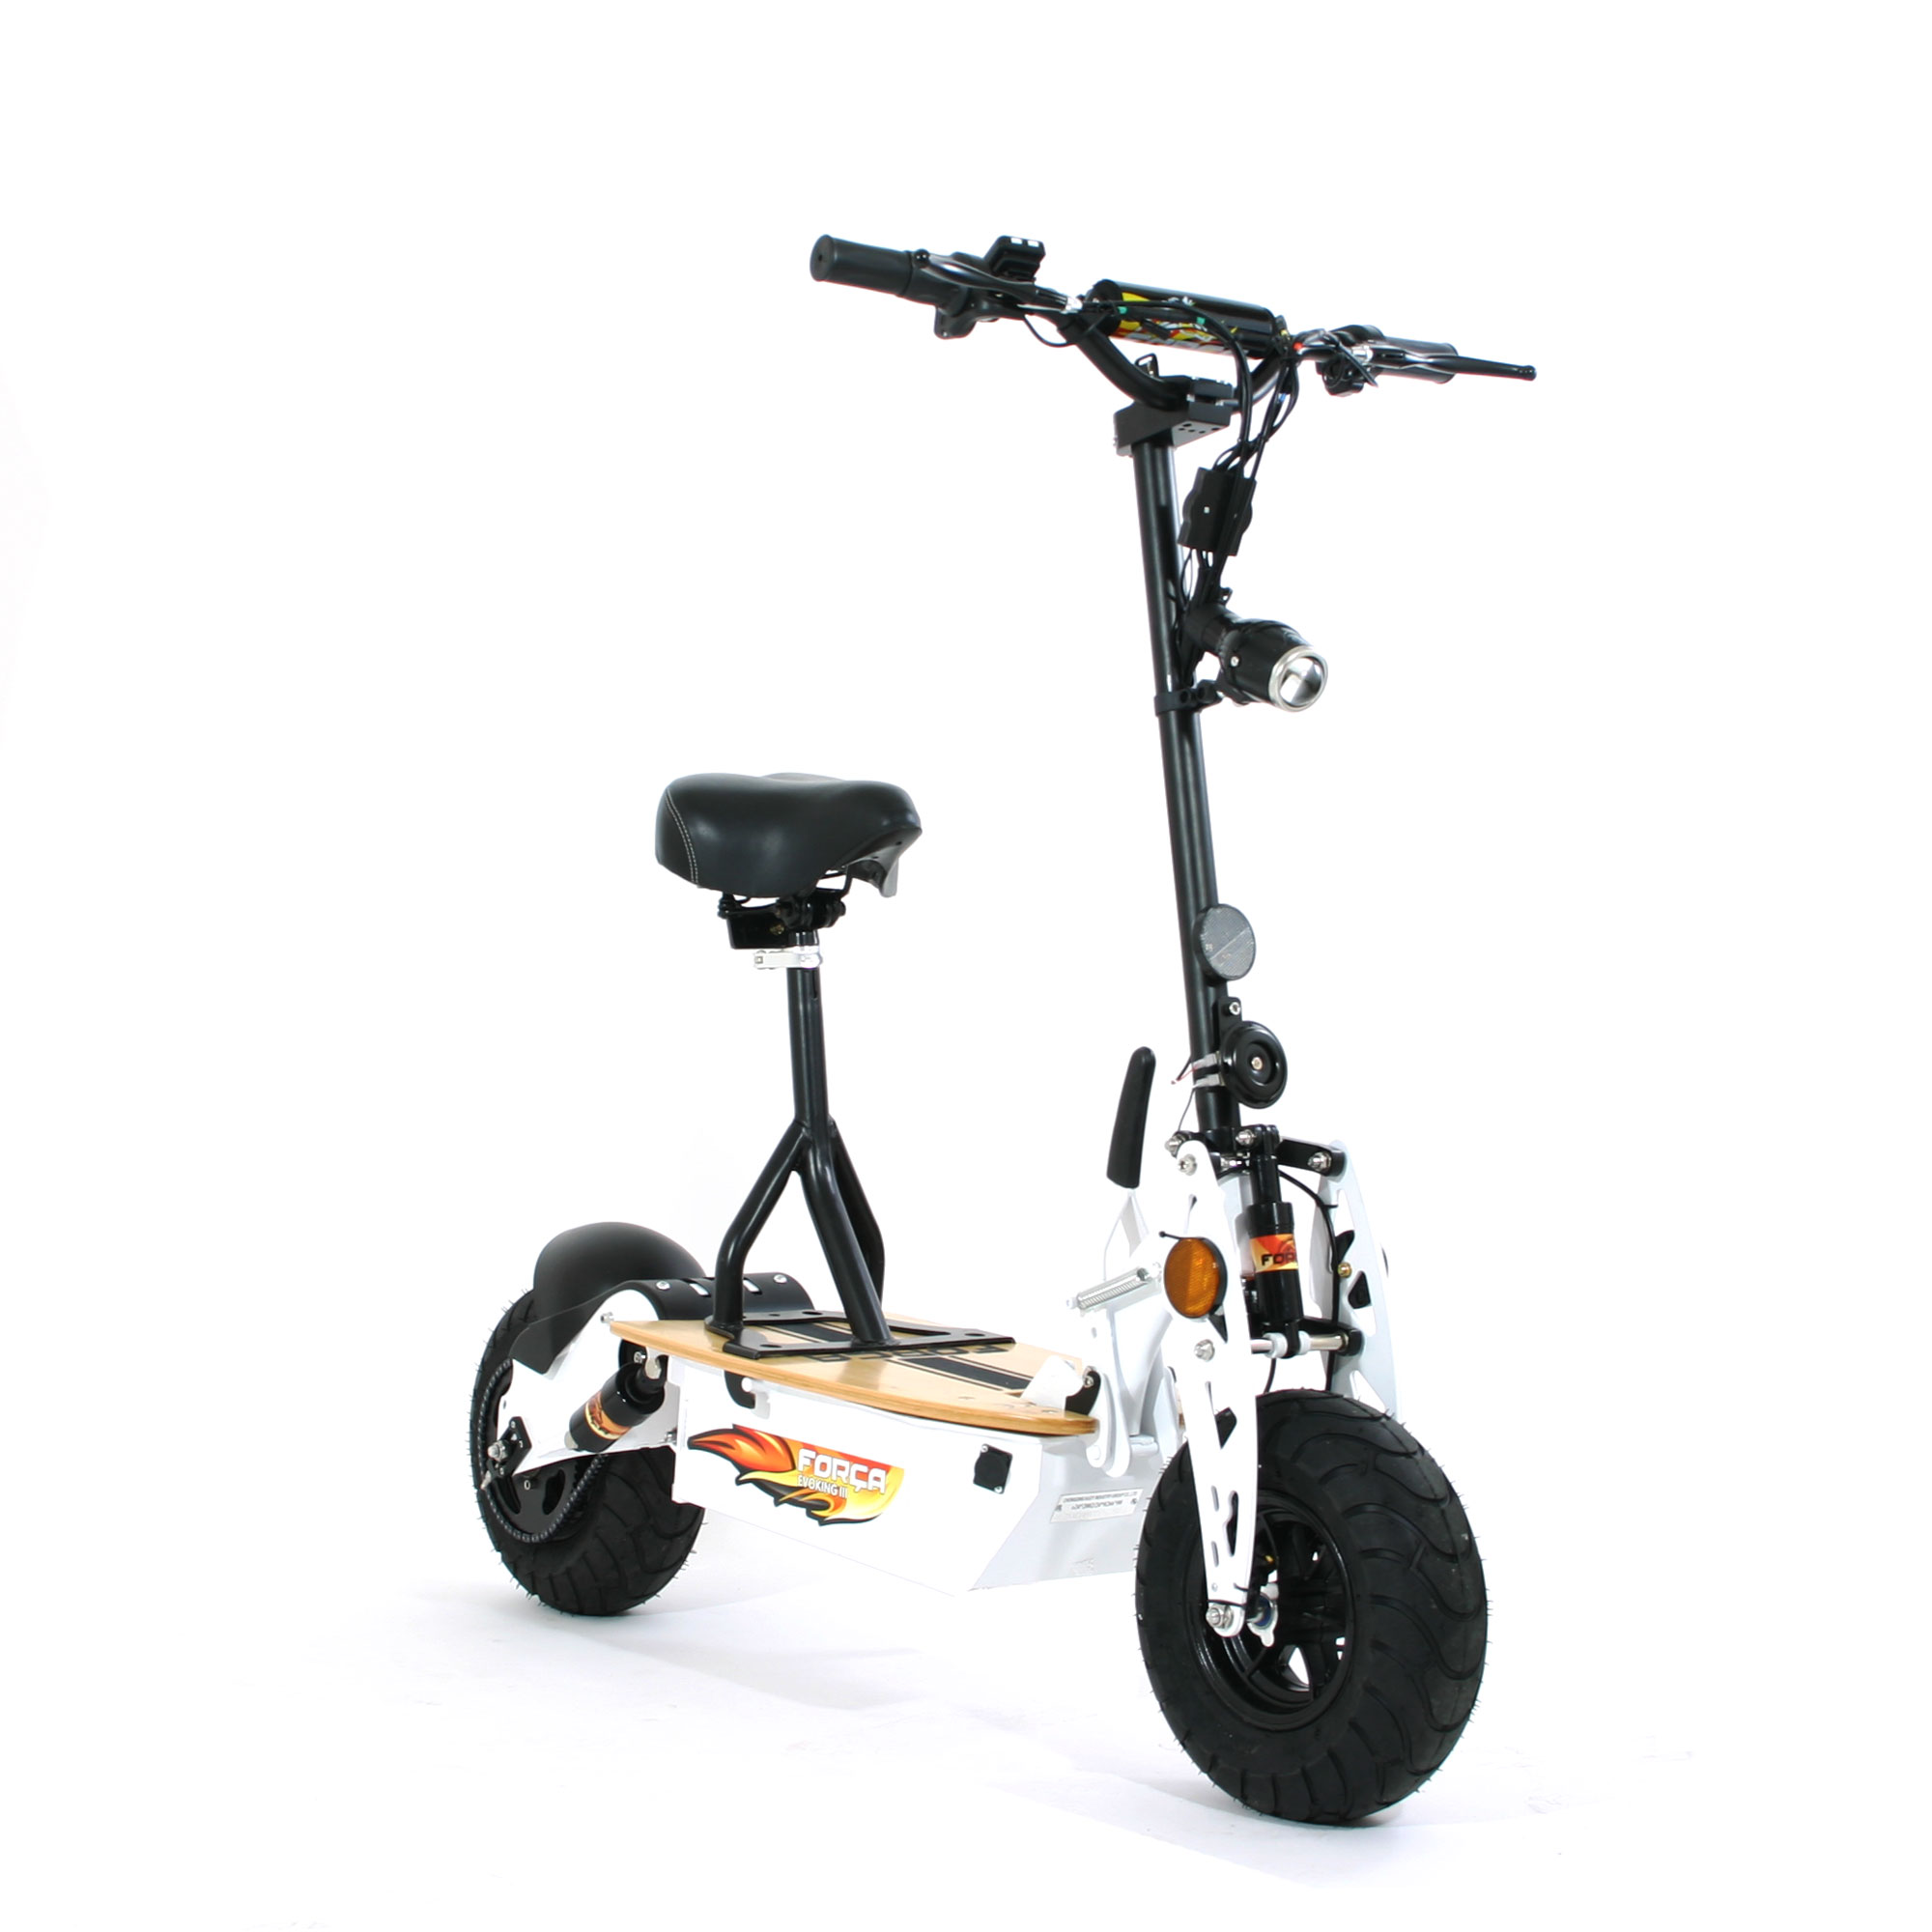 for a evoking iii elektro scooter mit 45km h topspeed in. Black Bedroom Furniture Sets. Home Design Ideas